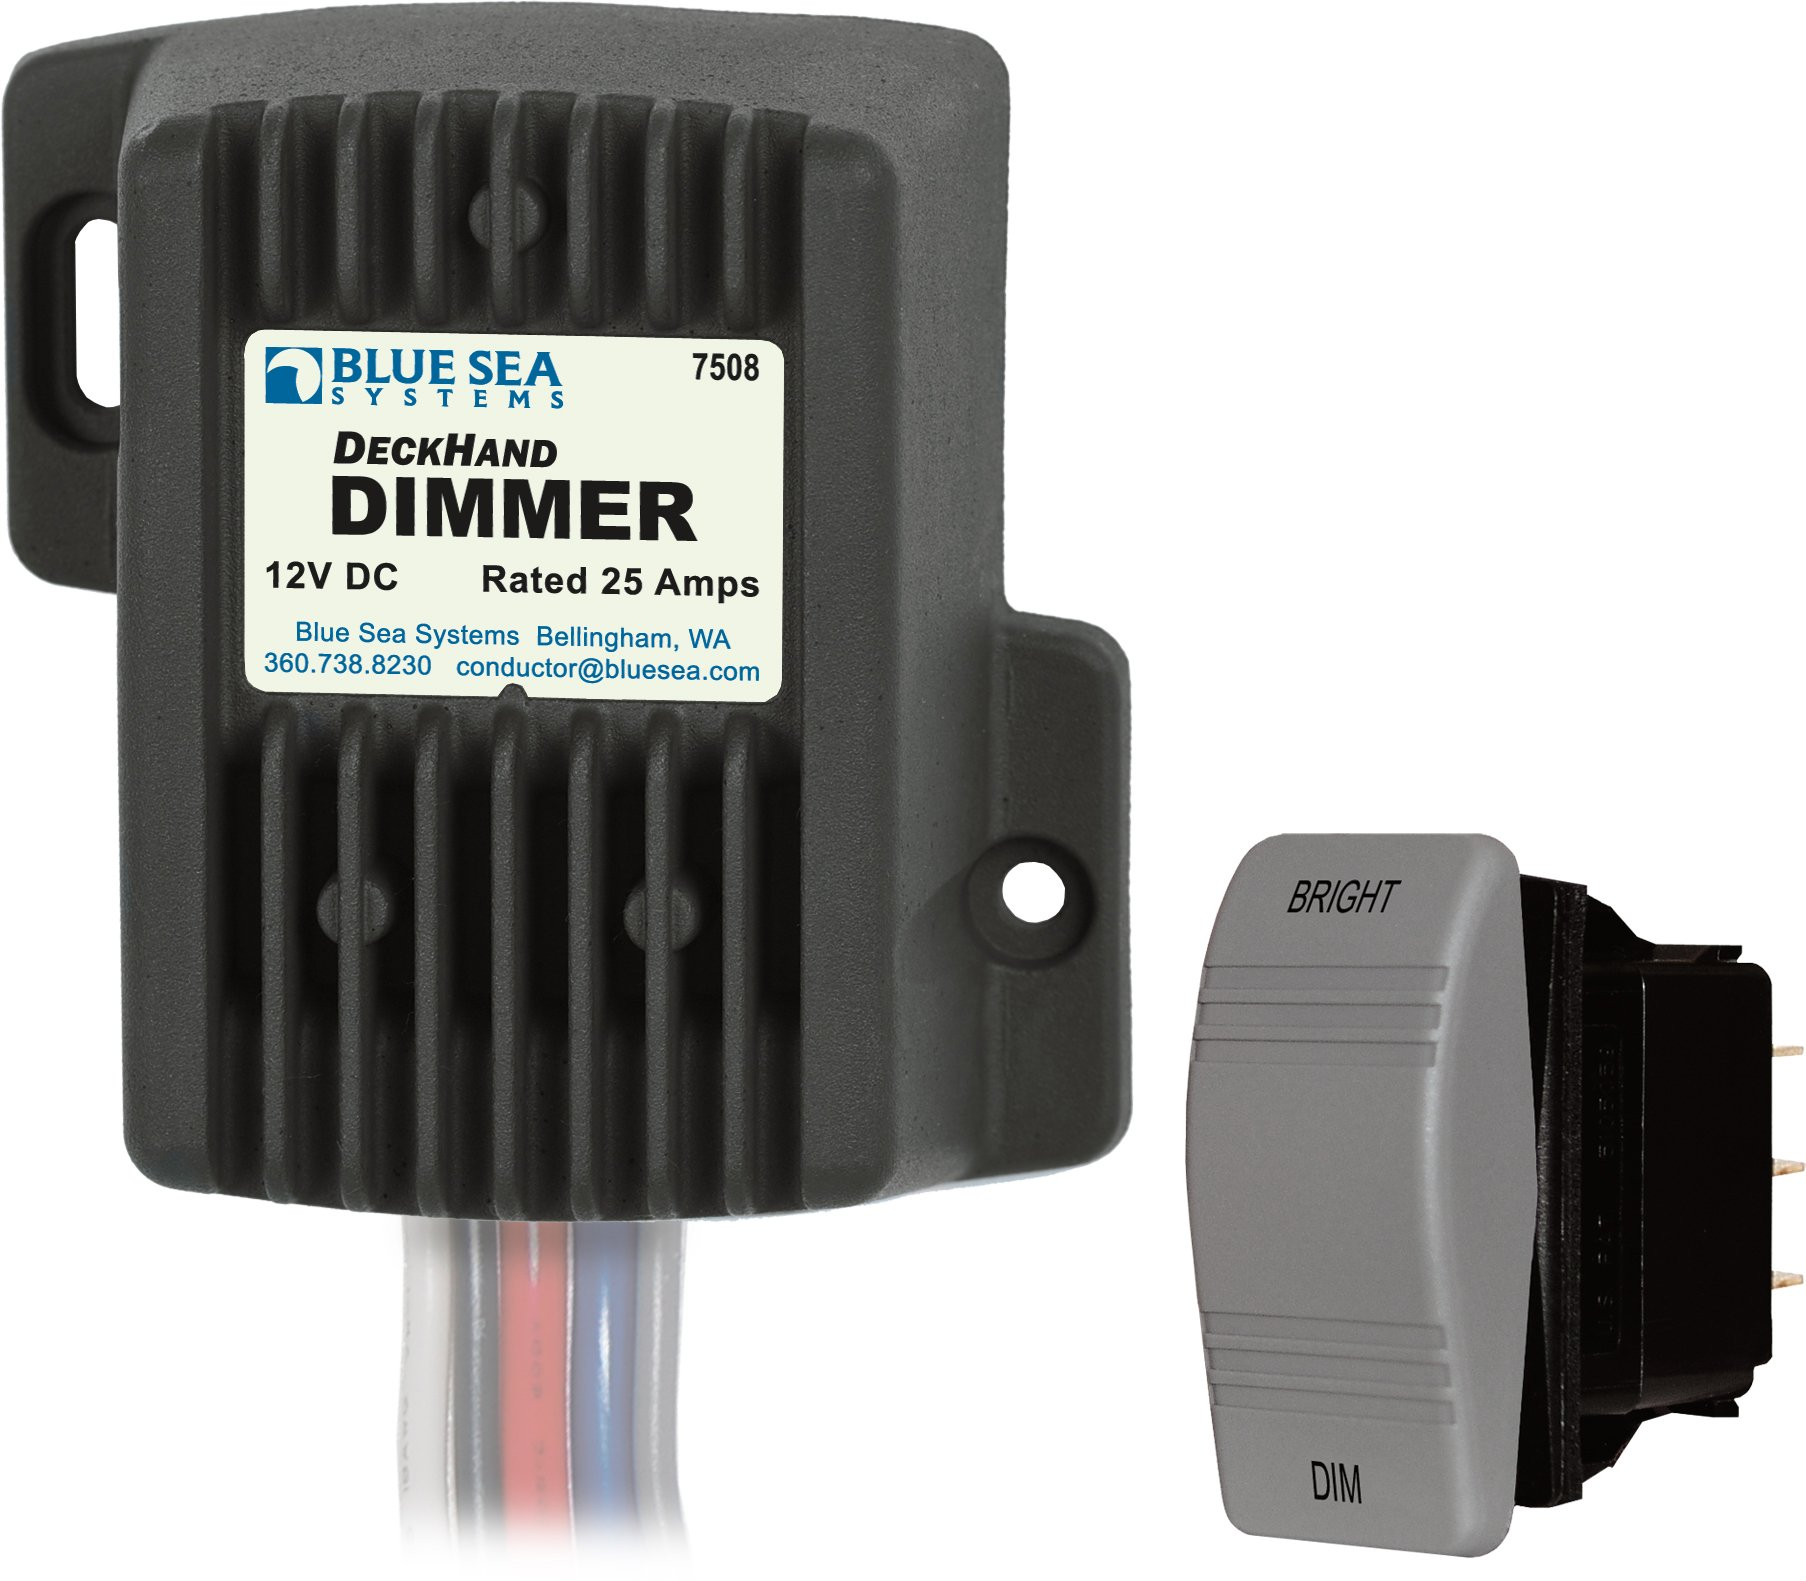 Blue Sea Systems 12V DC 25A Deckhand Dimmer